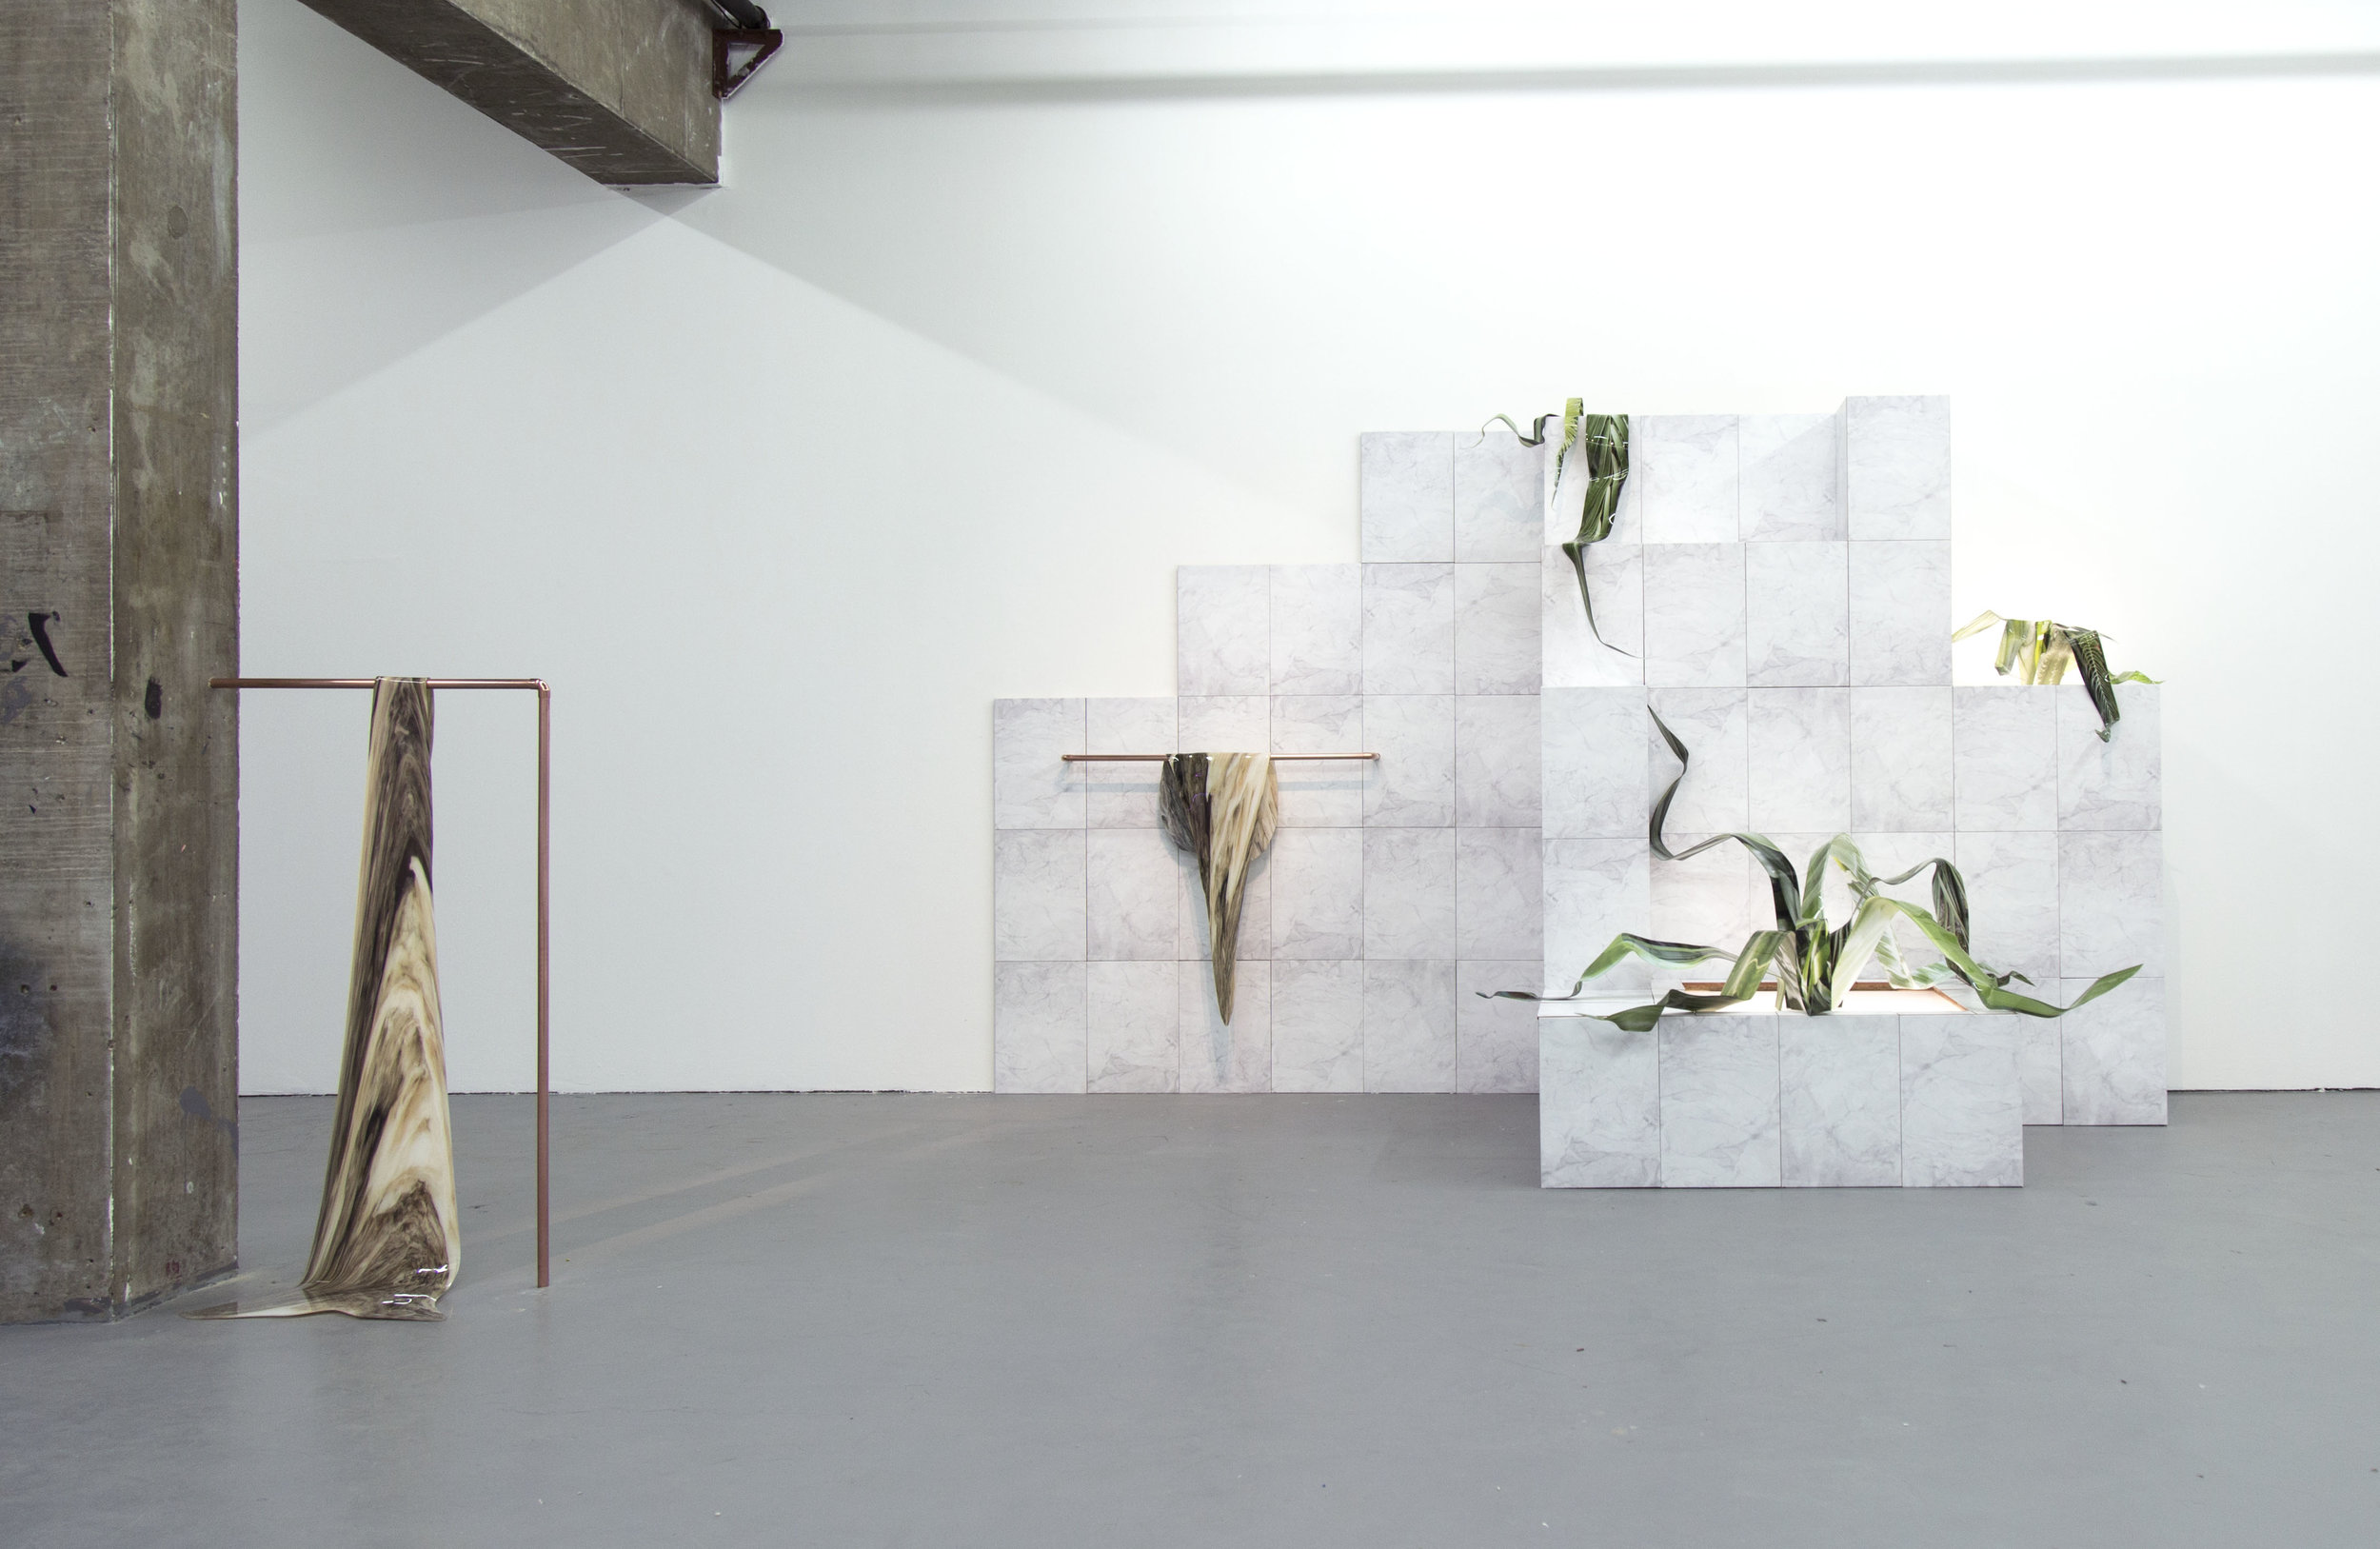 Figure 4: Courtesy of Felicity Hammond,  You Will Enter an Oasis,  2015, Installation View